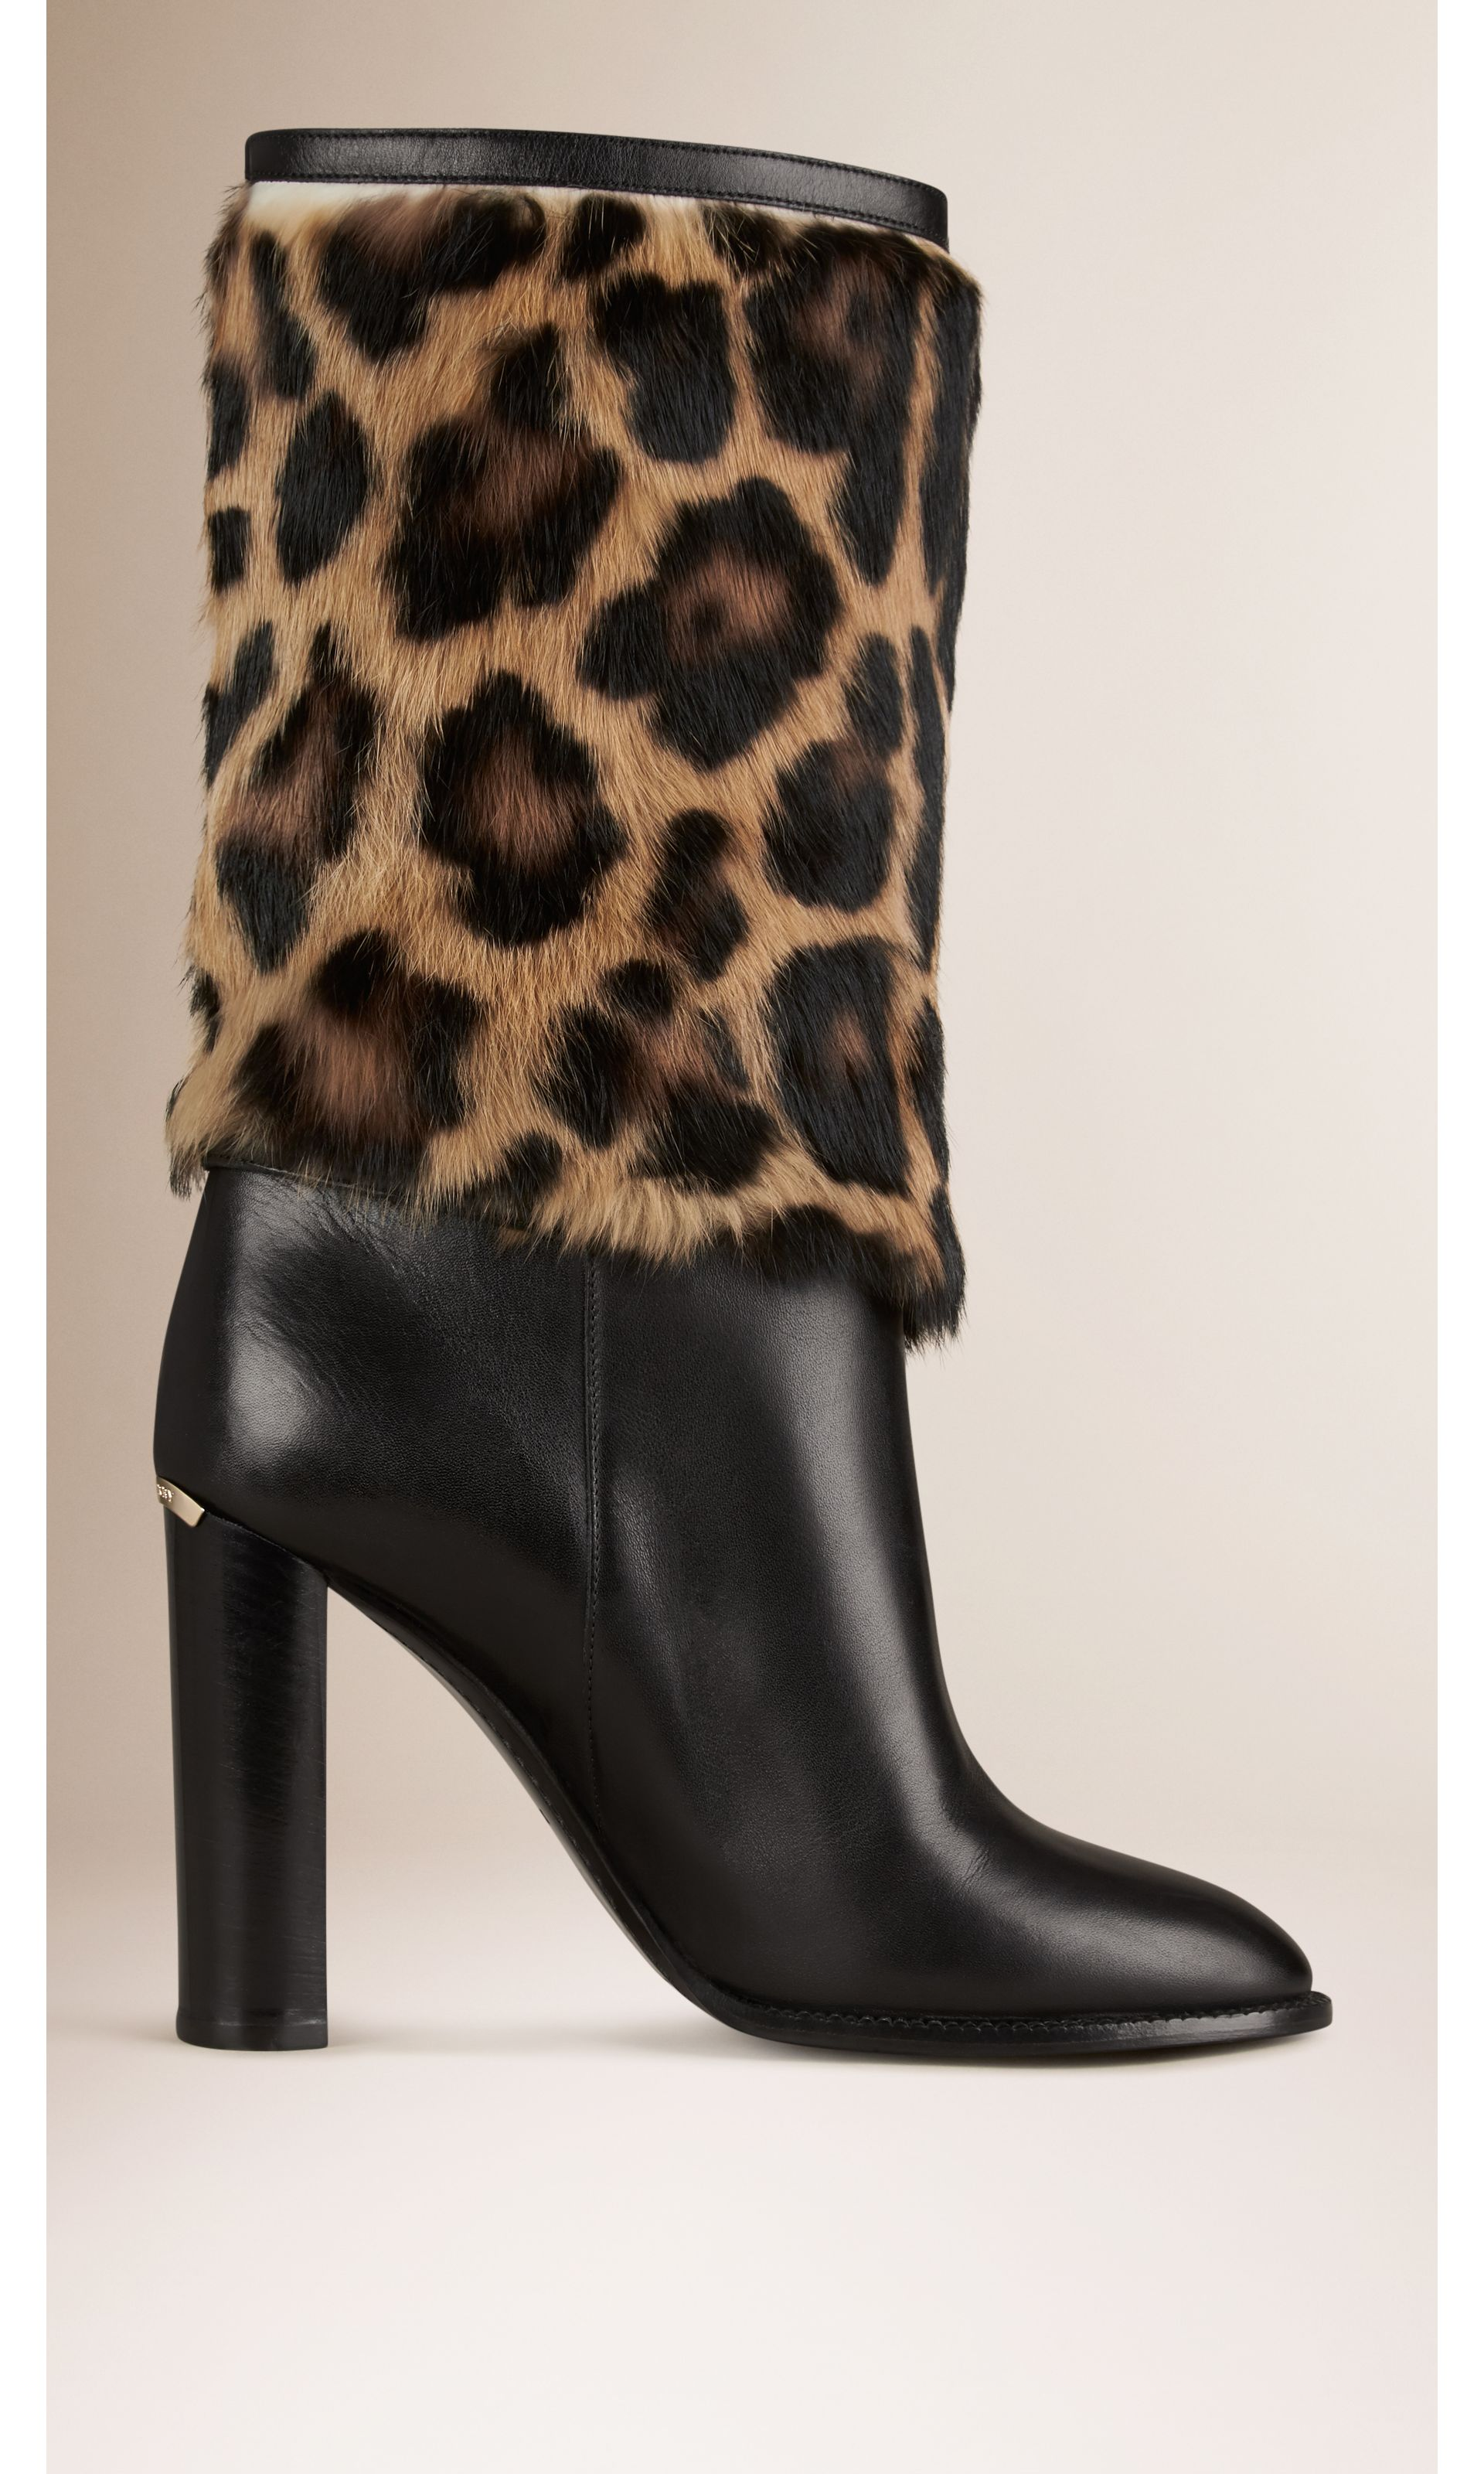 Animal Print Rabbit Fur and Leather Boots in Black - Women | Burberry United States - gallery image 2